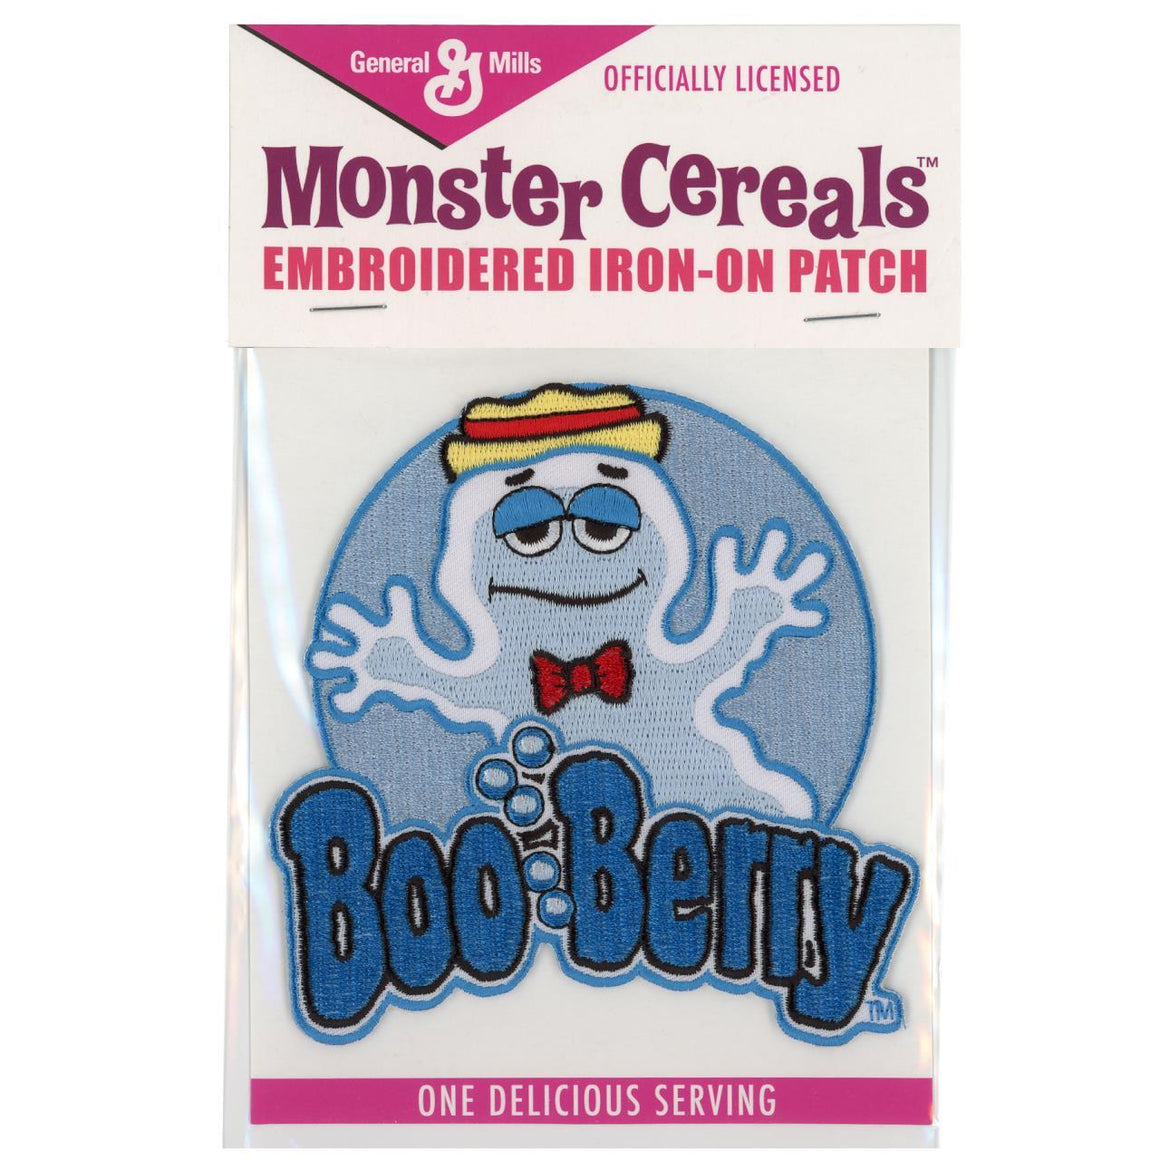 GENERAL MILLS BOO BERRY PATCH